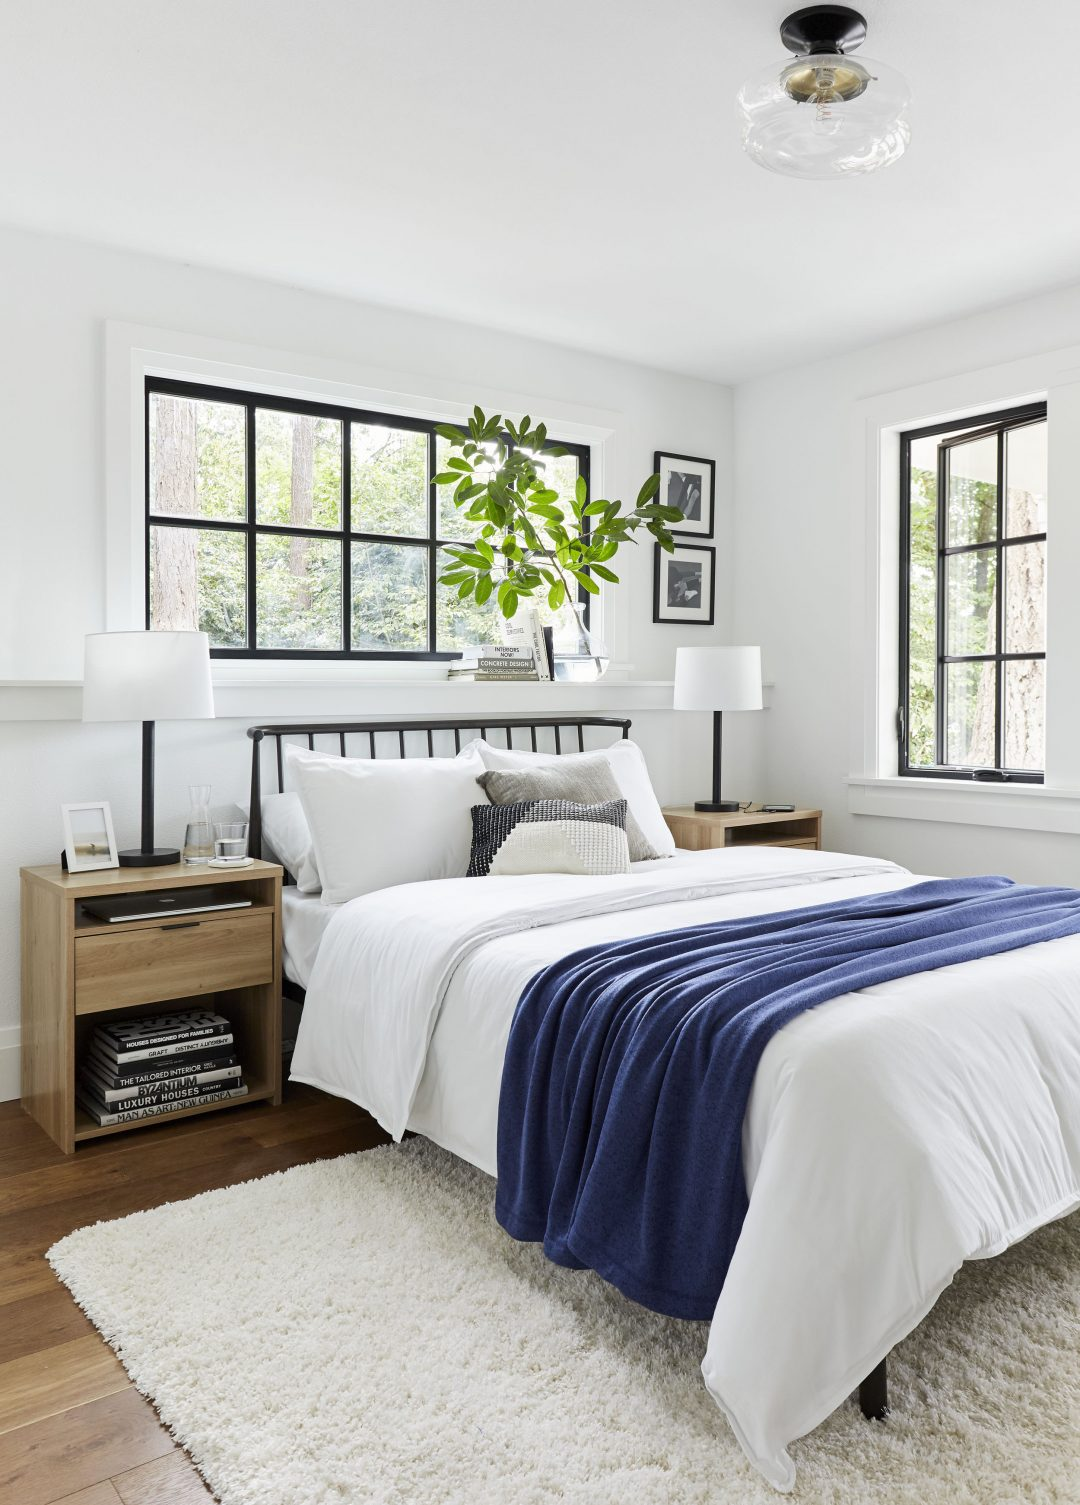 Bedroom Decor Ideas And Tips For Decorating Your Bedroom